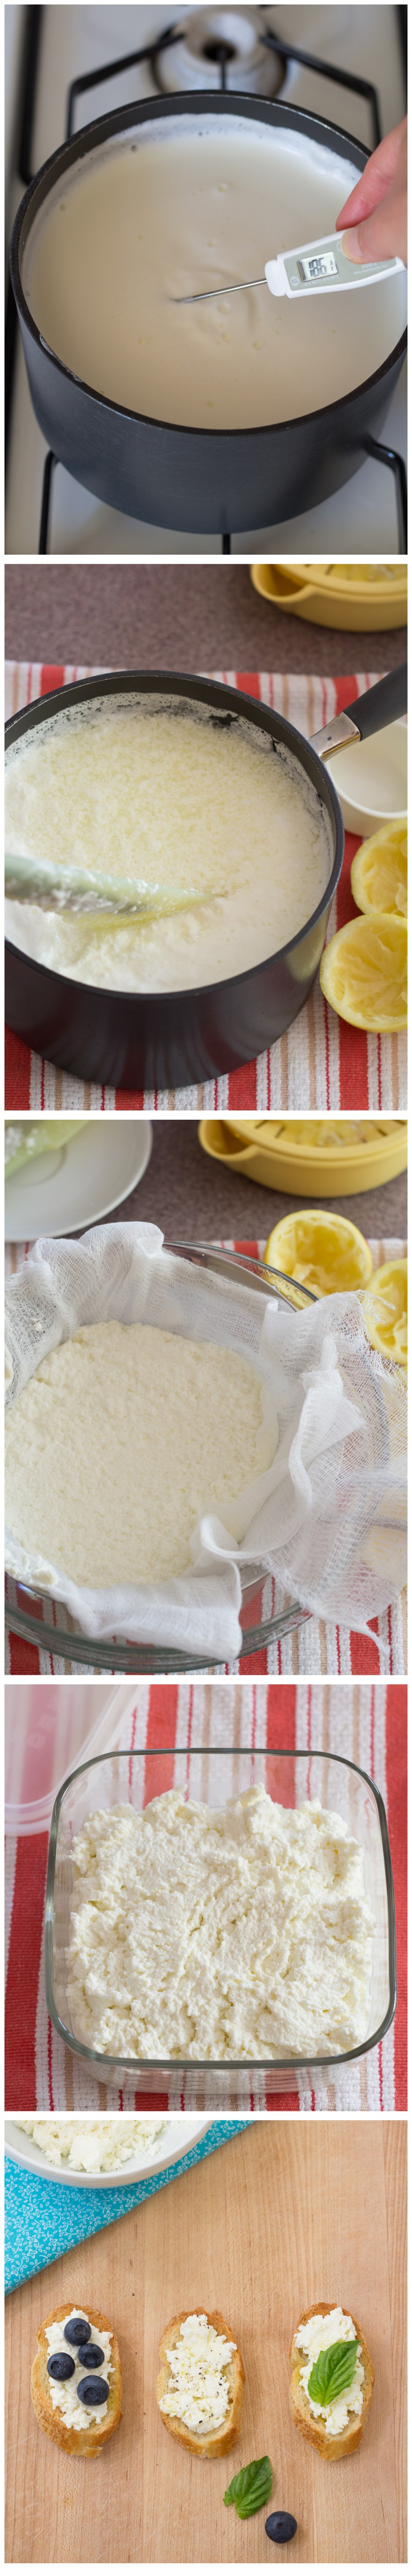 step by step shots of making cheese, checking temperature, curds, straining, finished cheese